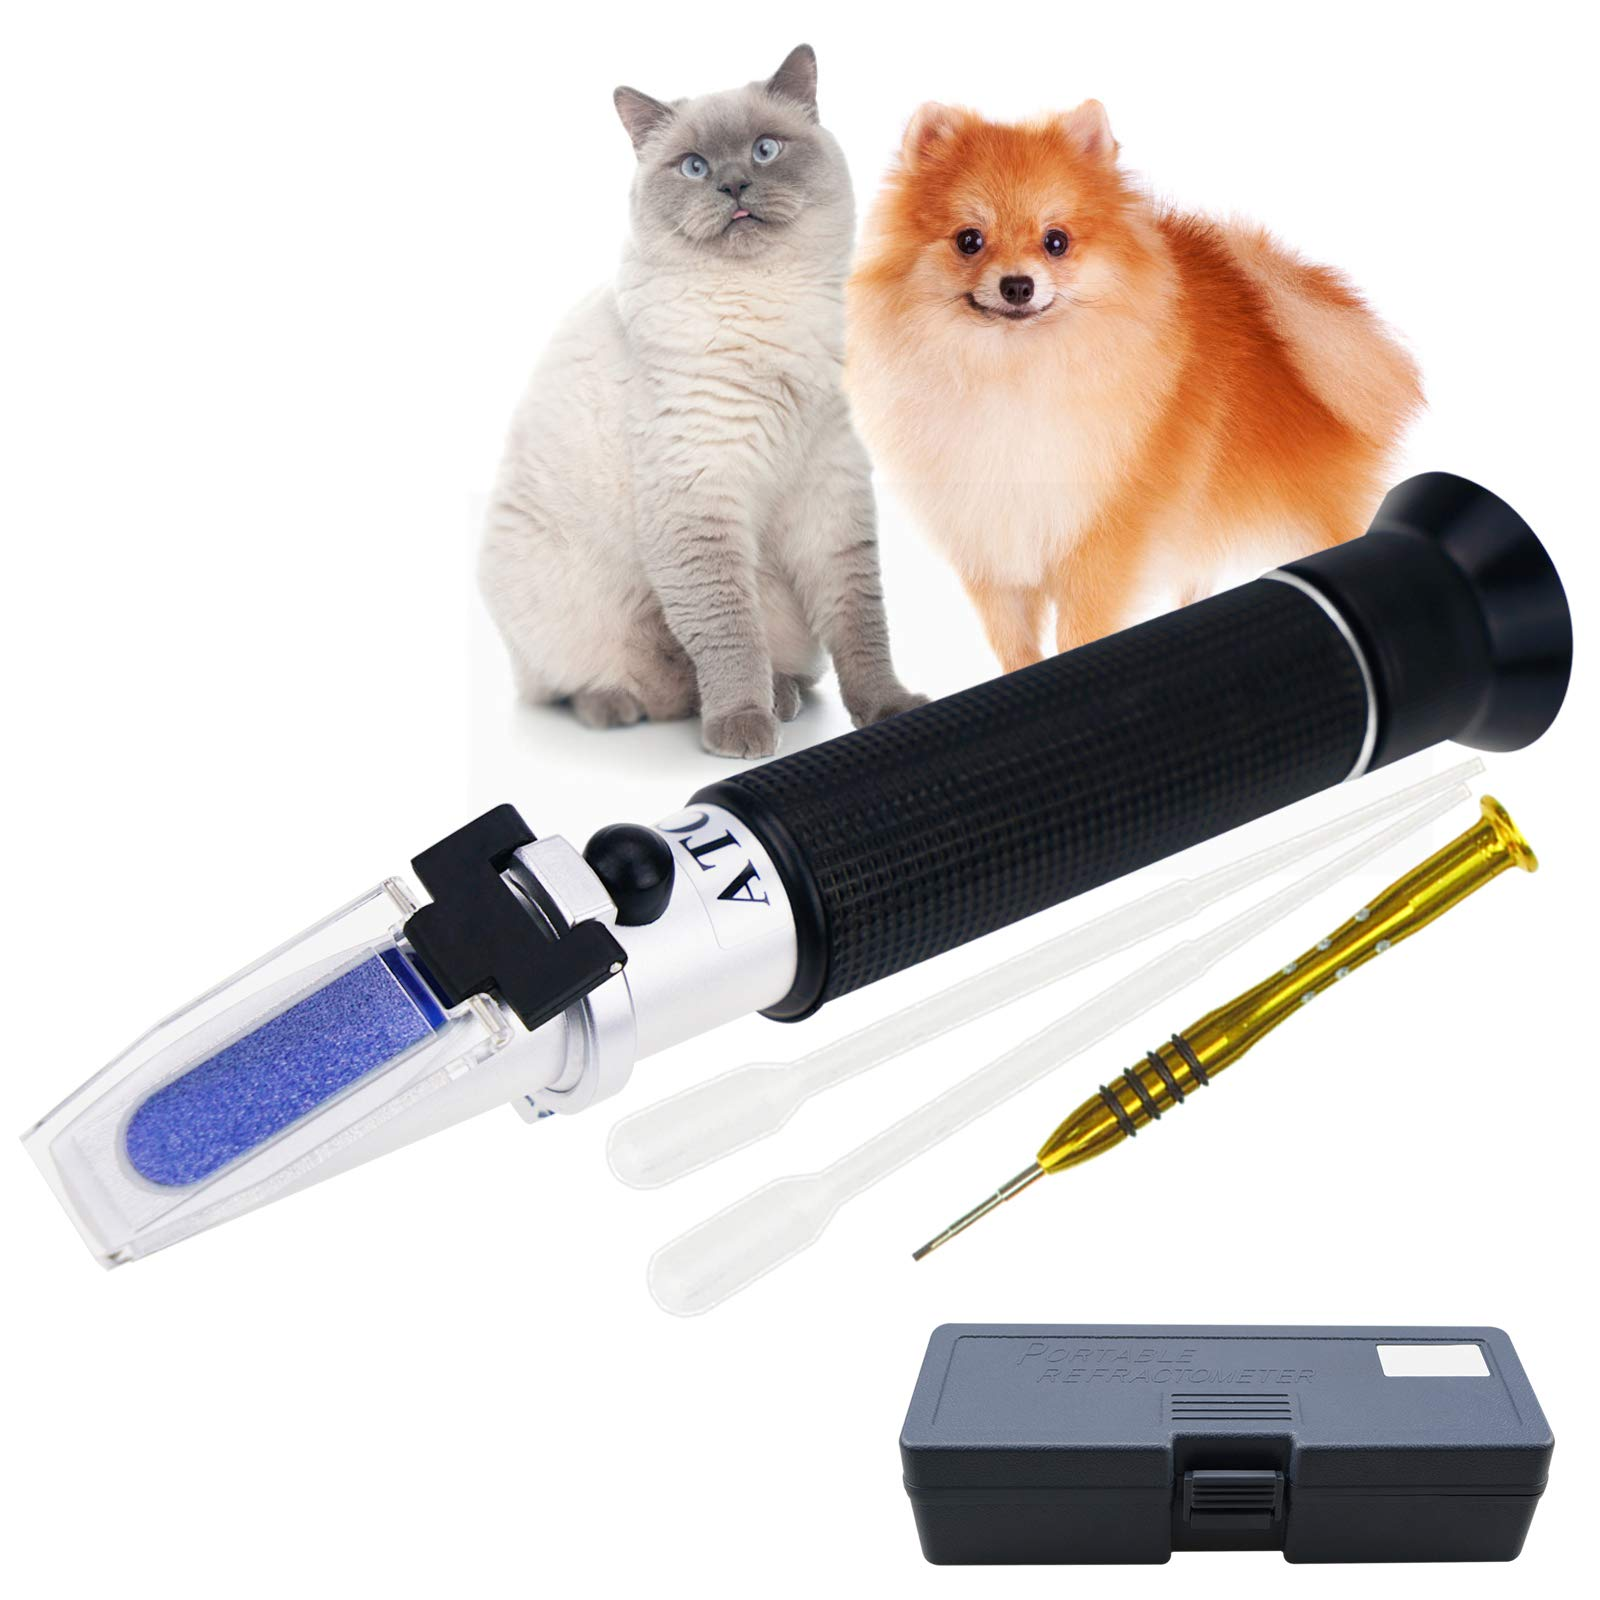 Portable Clinical Refractometer with ATC for Urine Specific Gravity RI Measurement of Pet Dog Cat 1.000-1.060RI and Blood Serum Protein 2-14g/dl, Free Pipettes